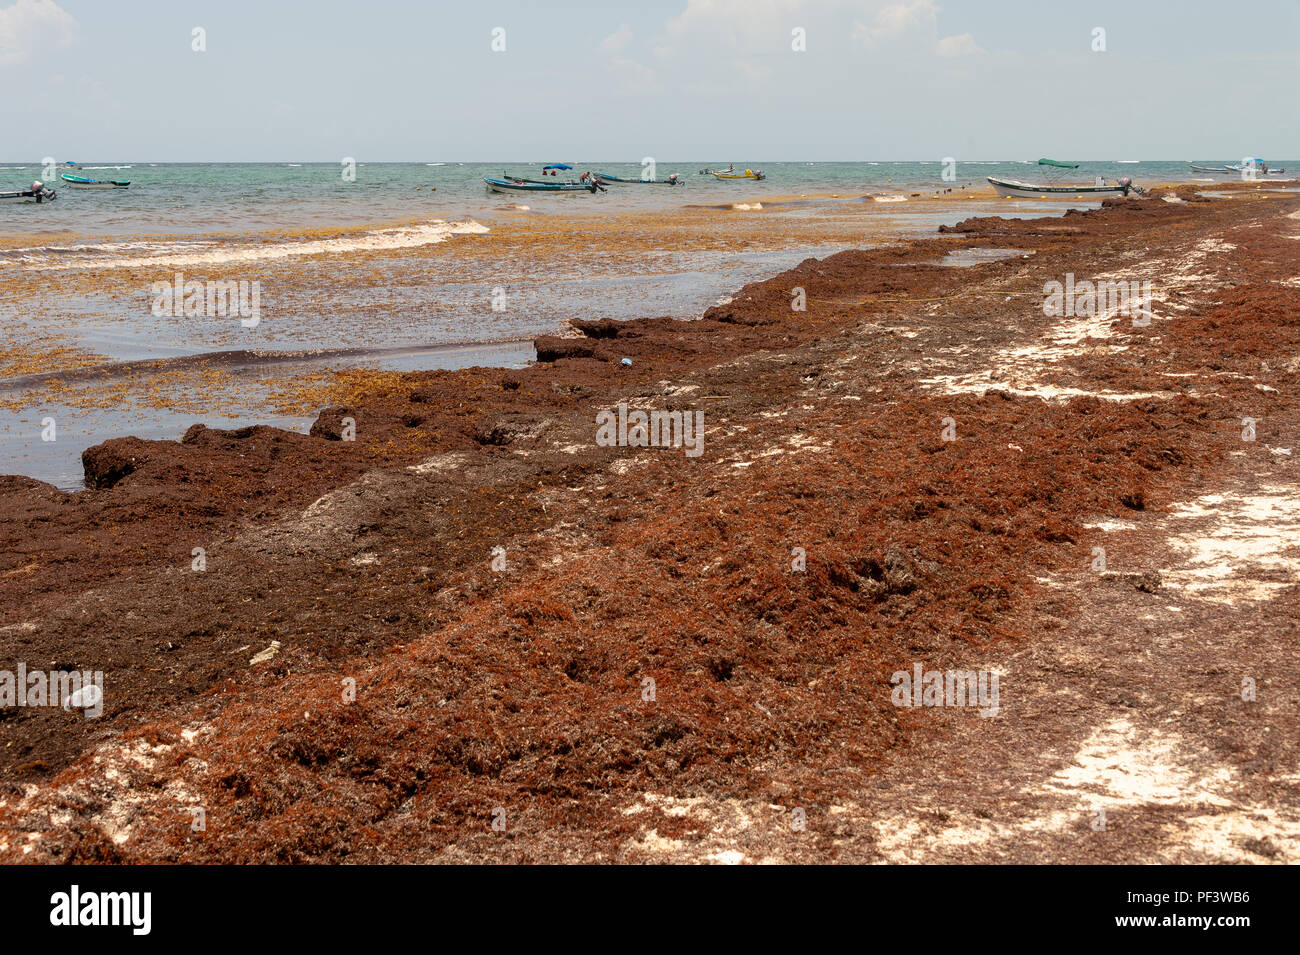 Tulum, Mexico - 12 August 2018: patches of Sargassum seaweed at